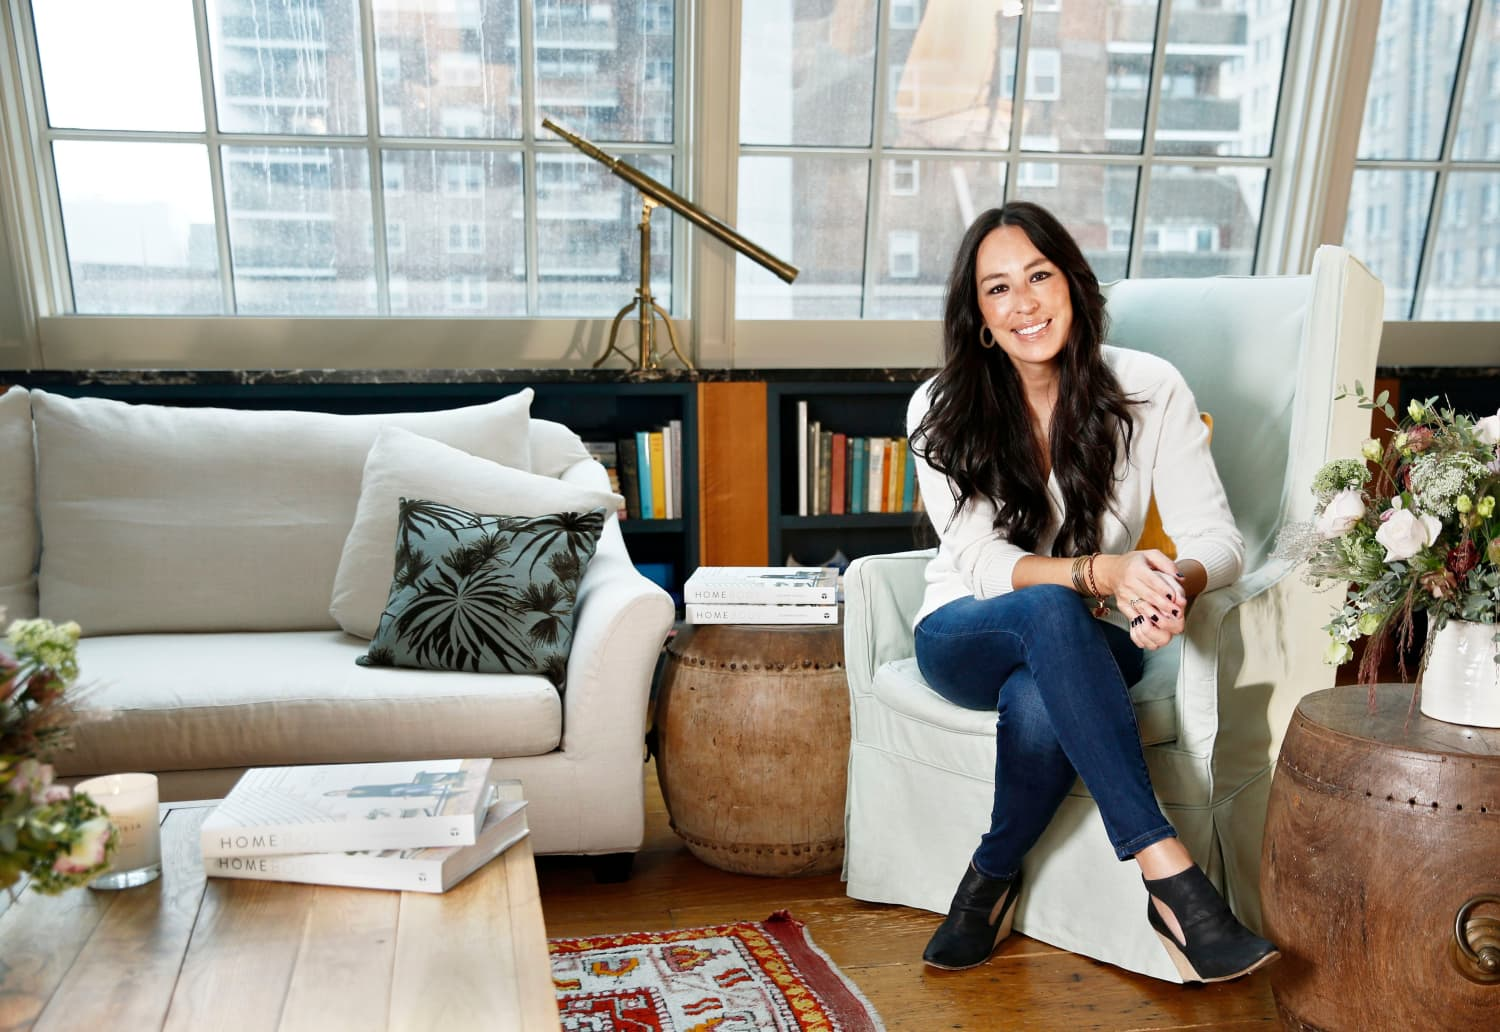 Joanna Gaines' Tip for Making Sure Home Updates Look Authentic